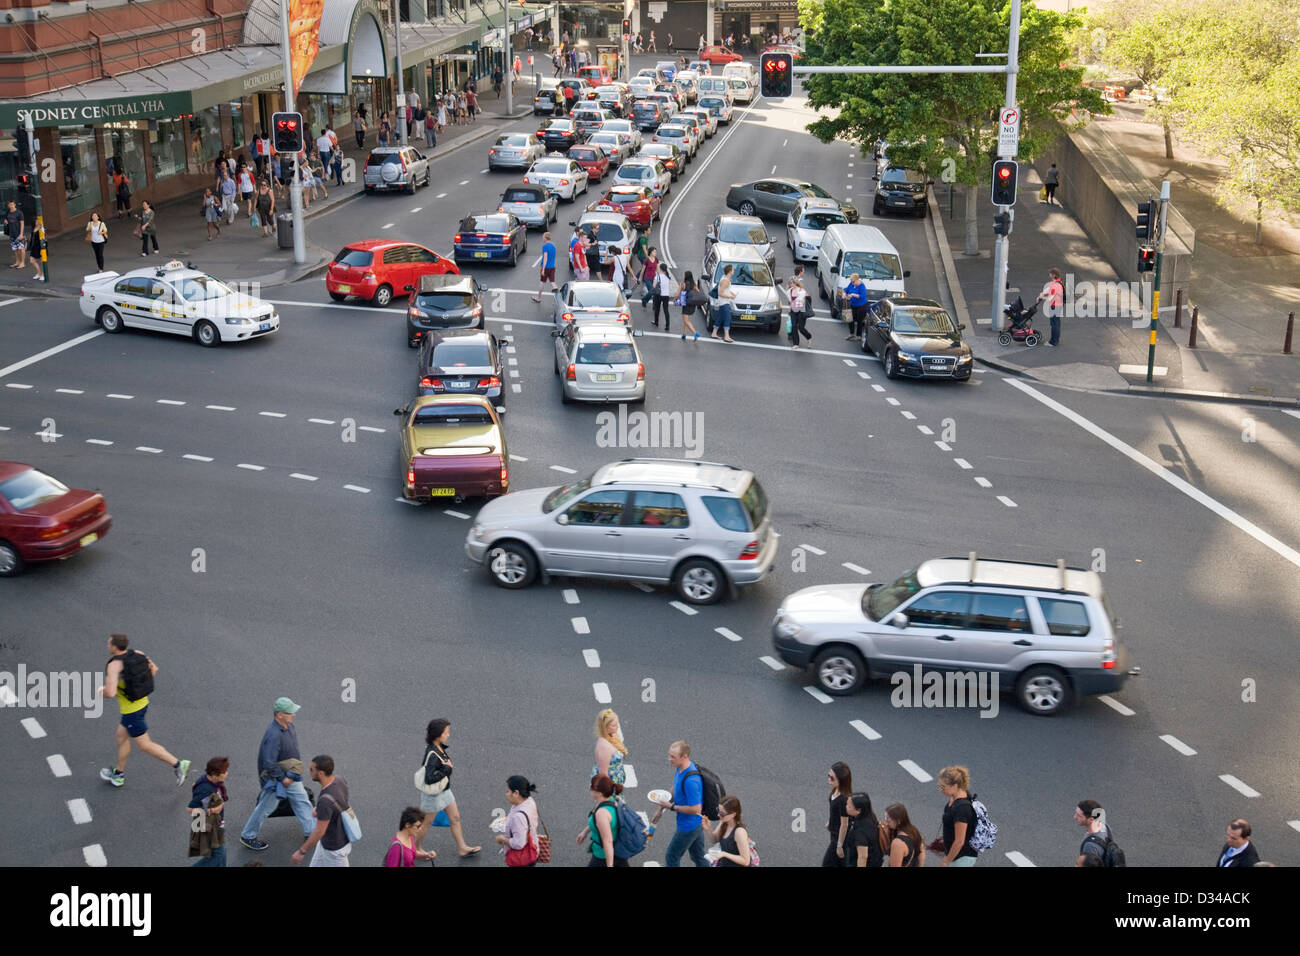 traffic congestion in sydney city centre - Stock Image